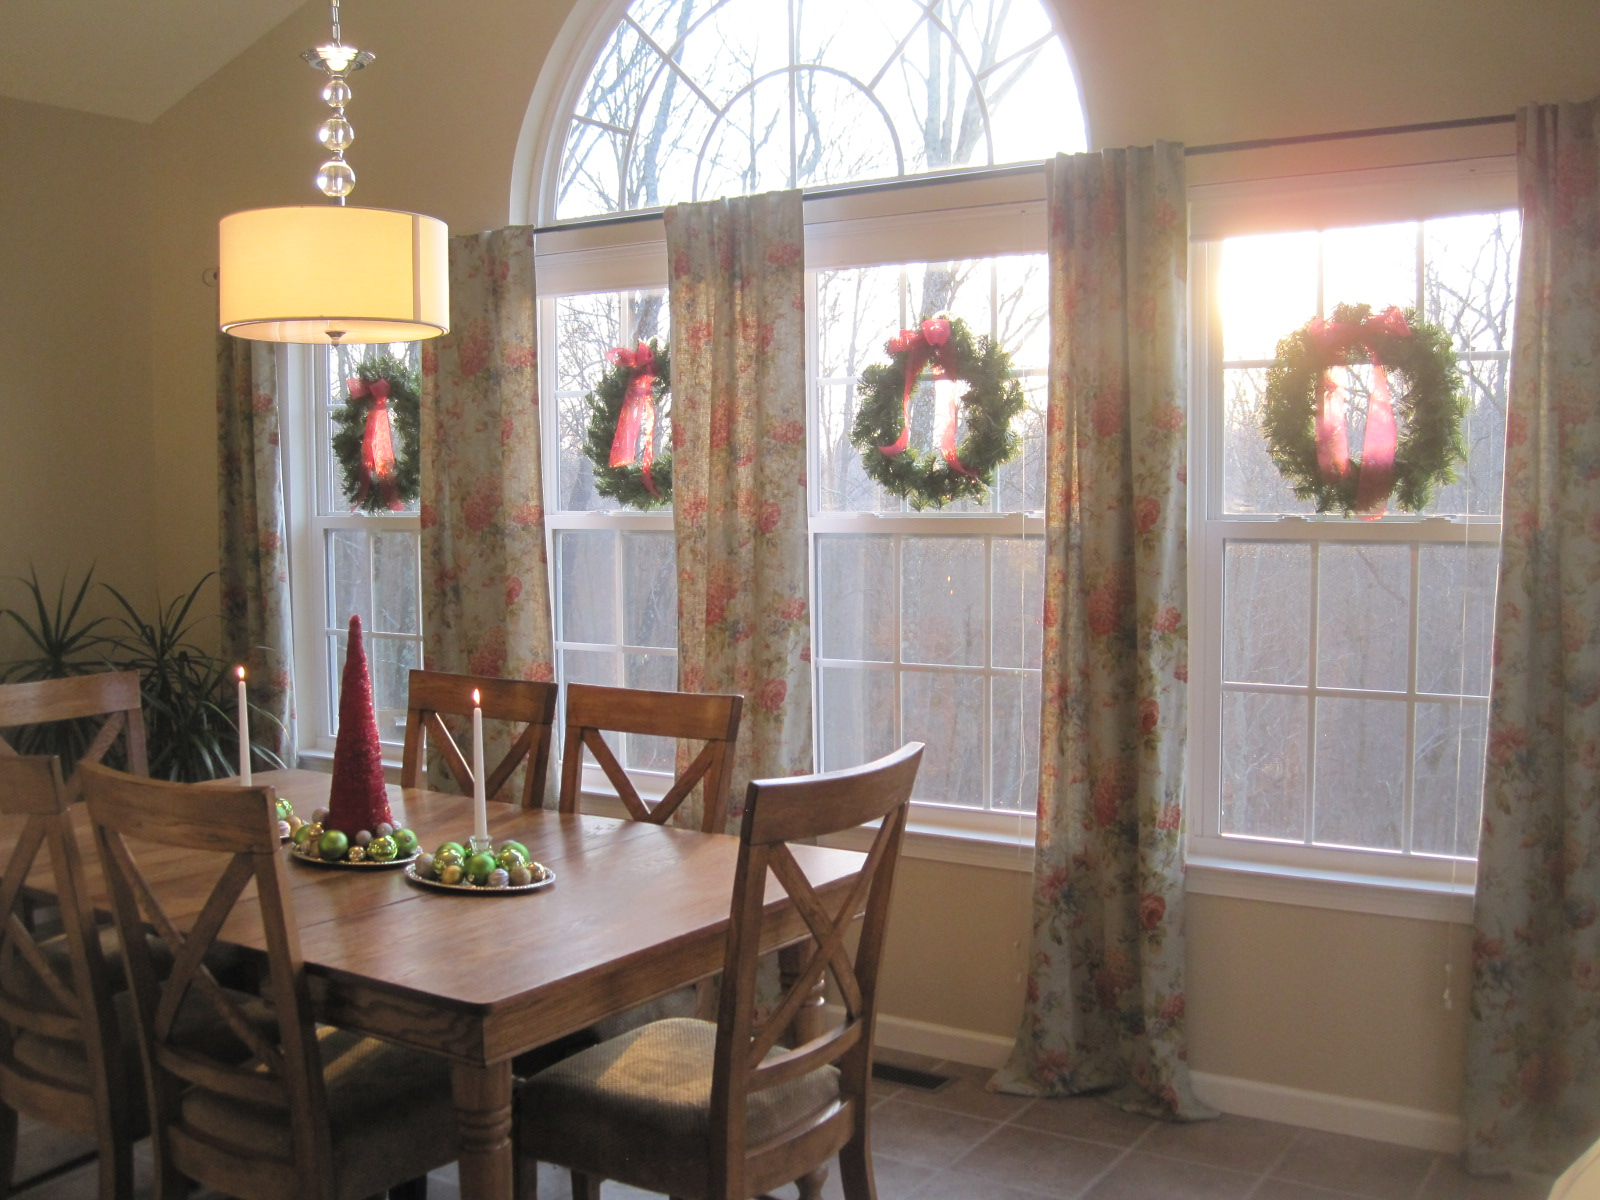 Morning Room Design Ideas Part - 31: Morning Room Christmas Decor Wood Table And Chairs With Warm Chandelier